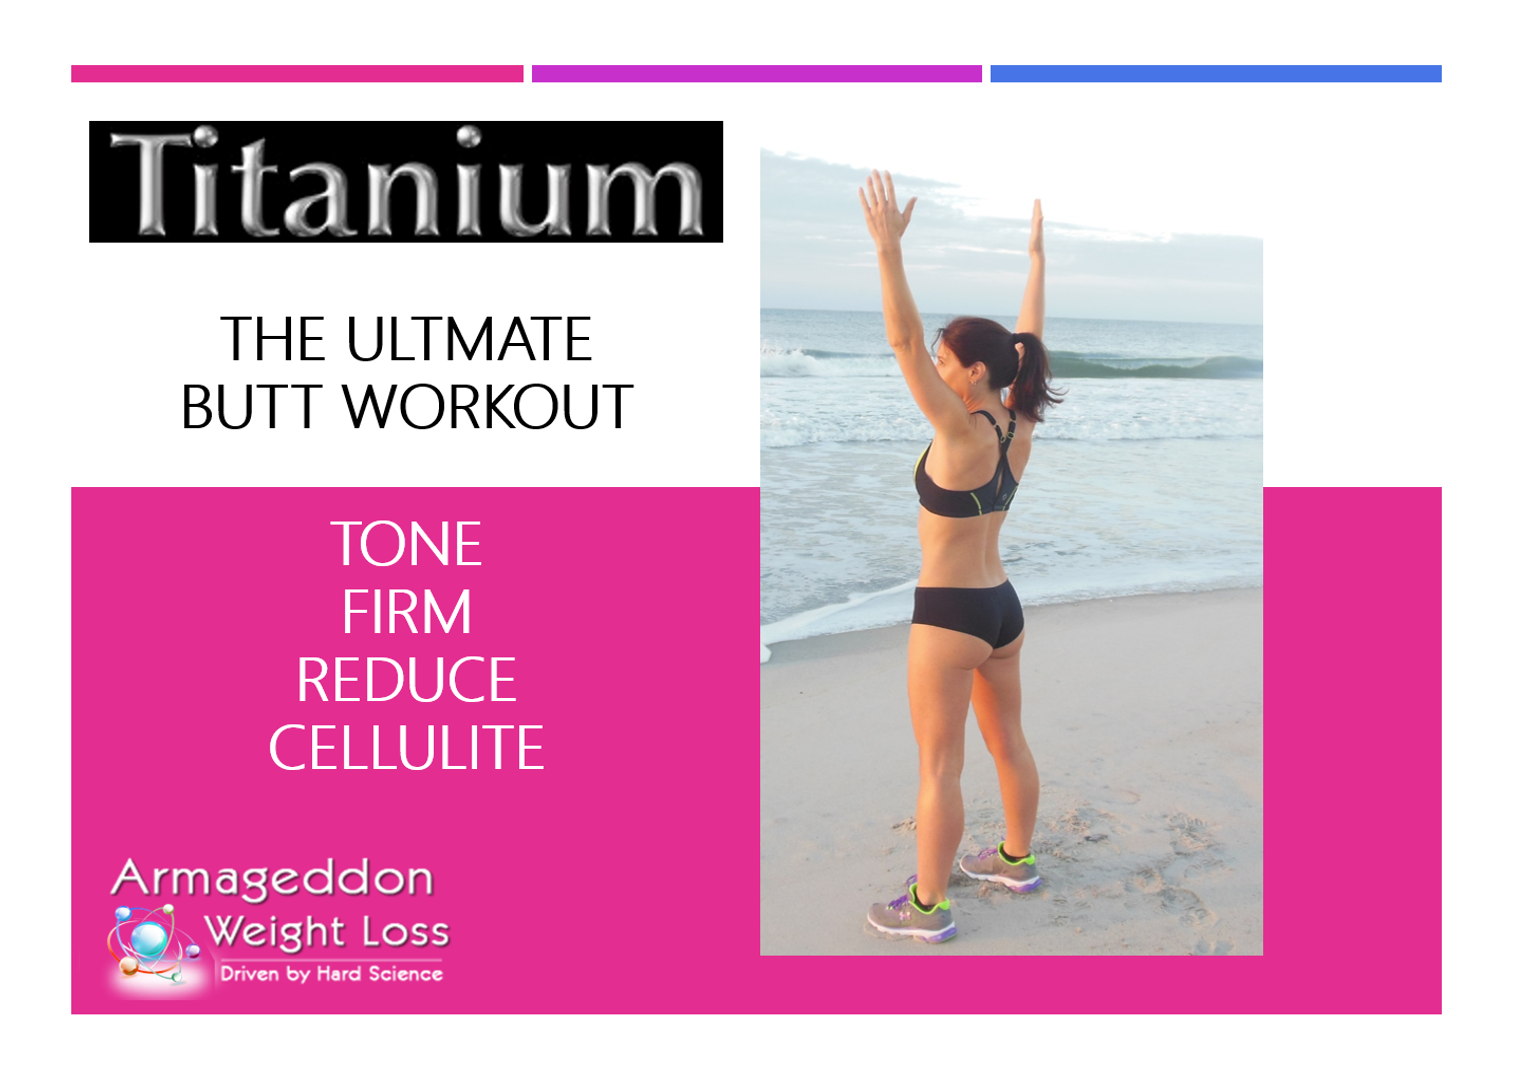 titanium - the best butt workout - Best Butt Exercises - Best Butt Toning Exercises - Best Butt Firming Exercises - Brazilian Butt - Best Butt Workout - Armageddon Weight Loss fitness!!